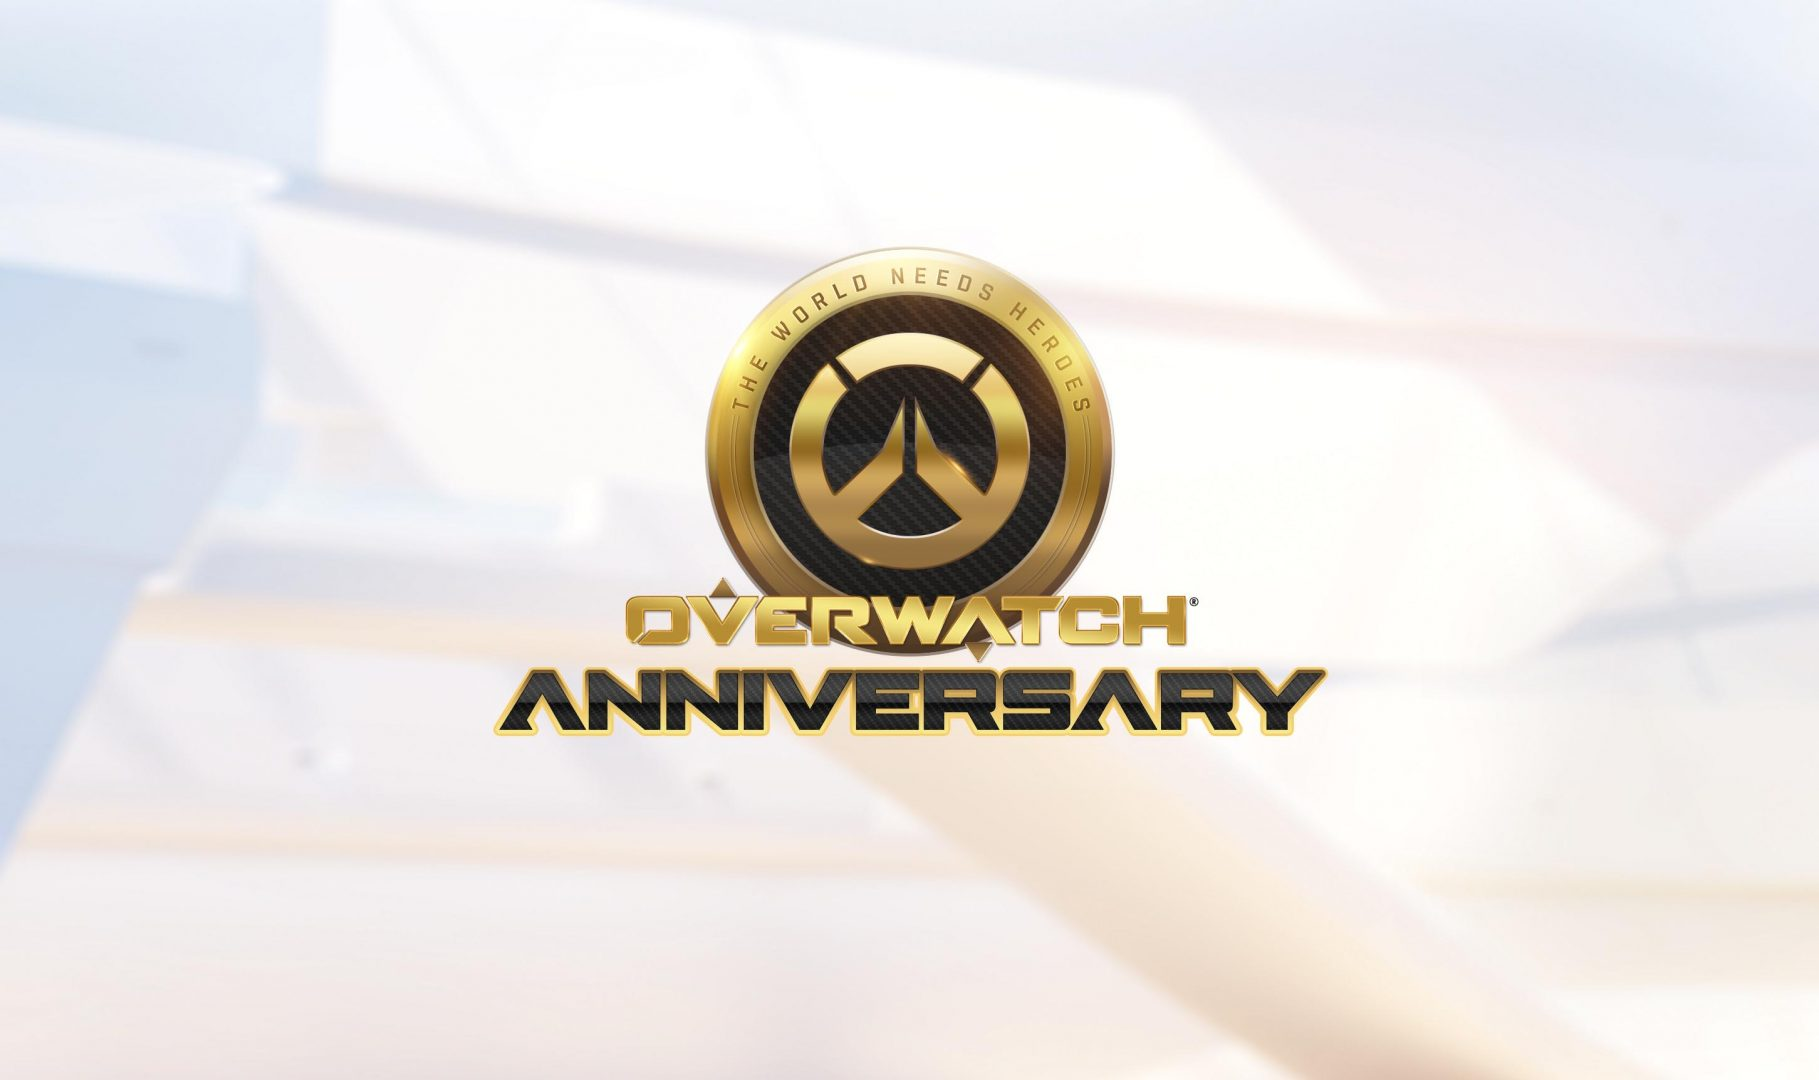 Overwatch is A Year Old! To Celebrate Blizzard is Hosting A Free Weekend, Anniversary Event and Game of the Year Edition!